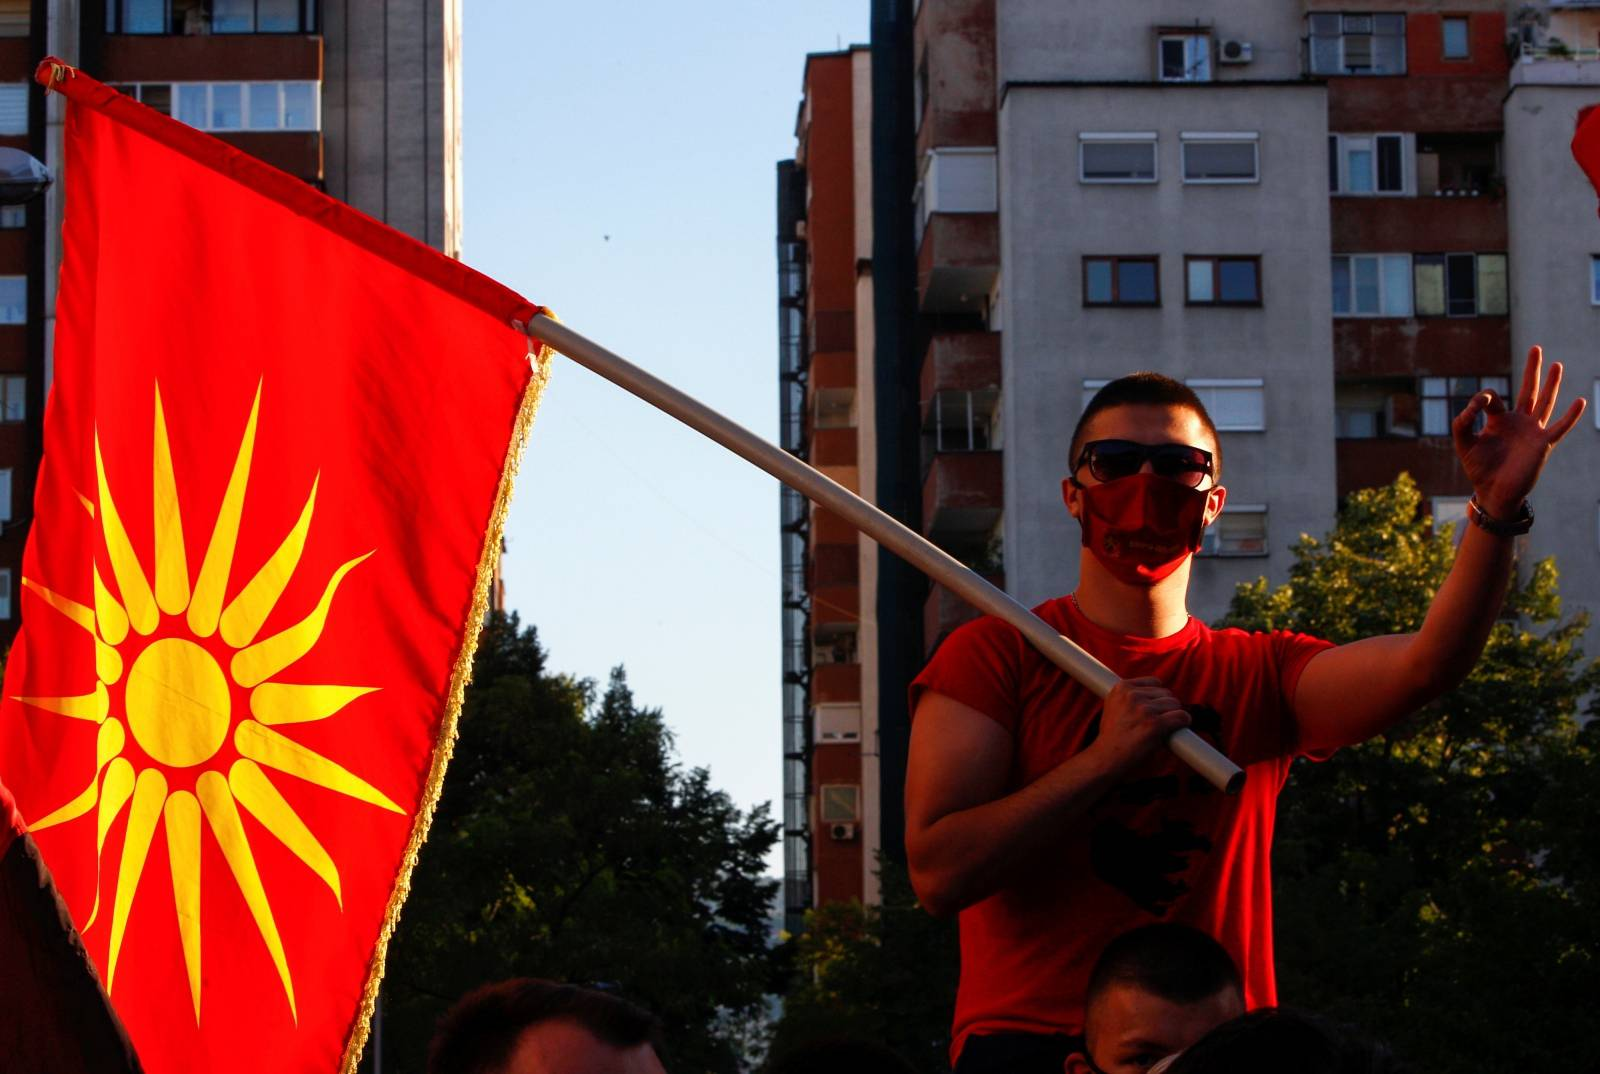 A supporter of Macedonia's nationalist opposition party VMRO-DPMNE leader Hristijan Mickoski holds a party flag during a gathering, in Skopje